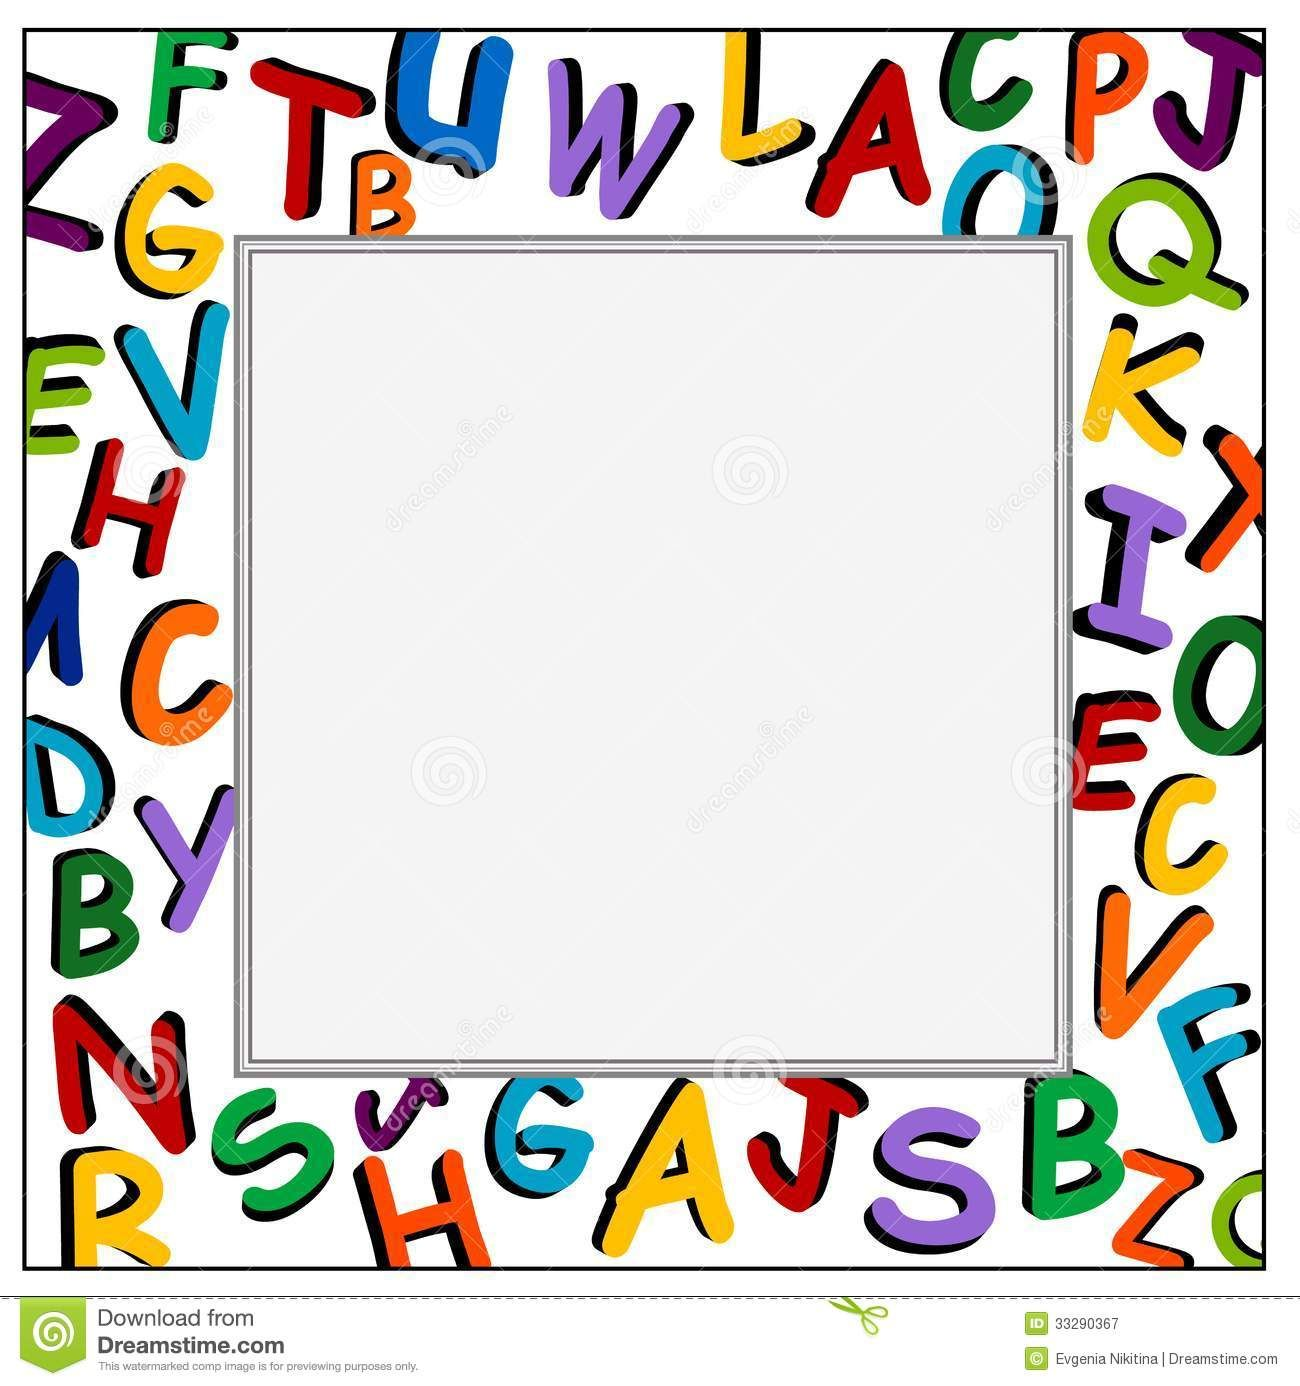 Free PPT and clipart frames for worksheets.